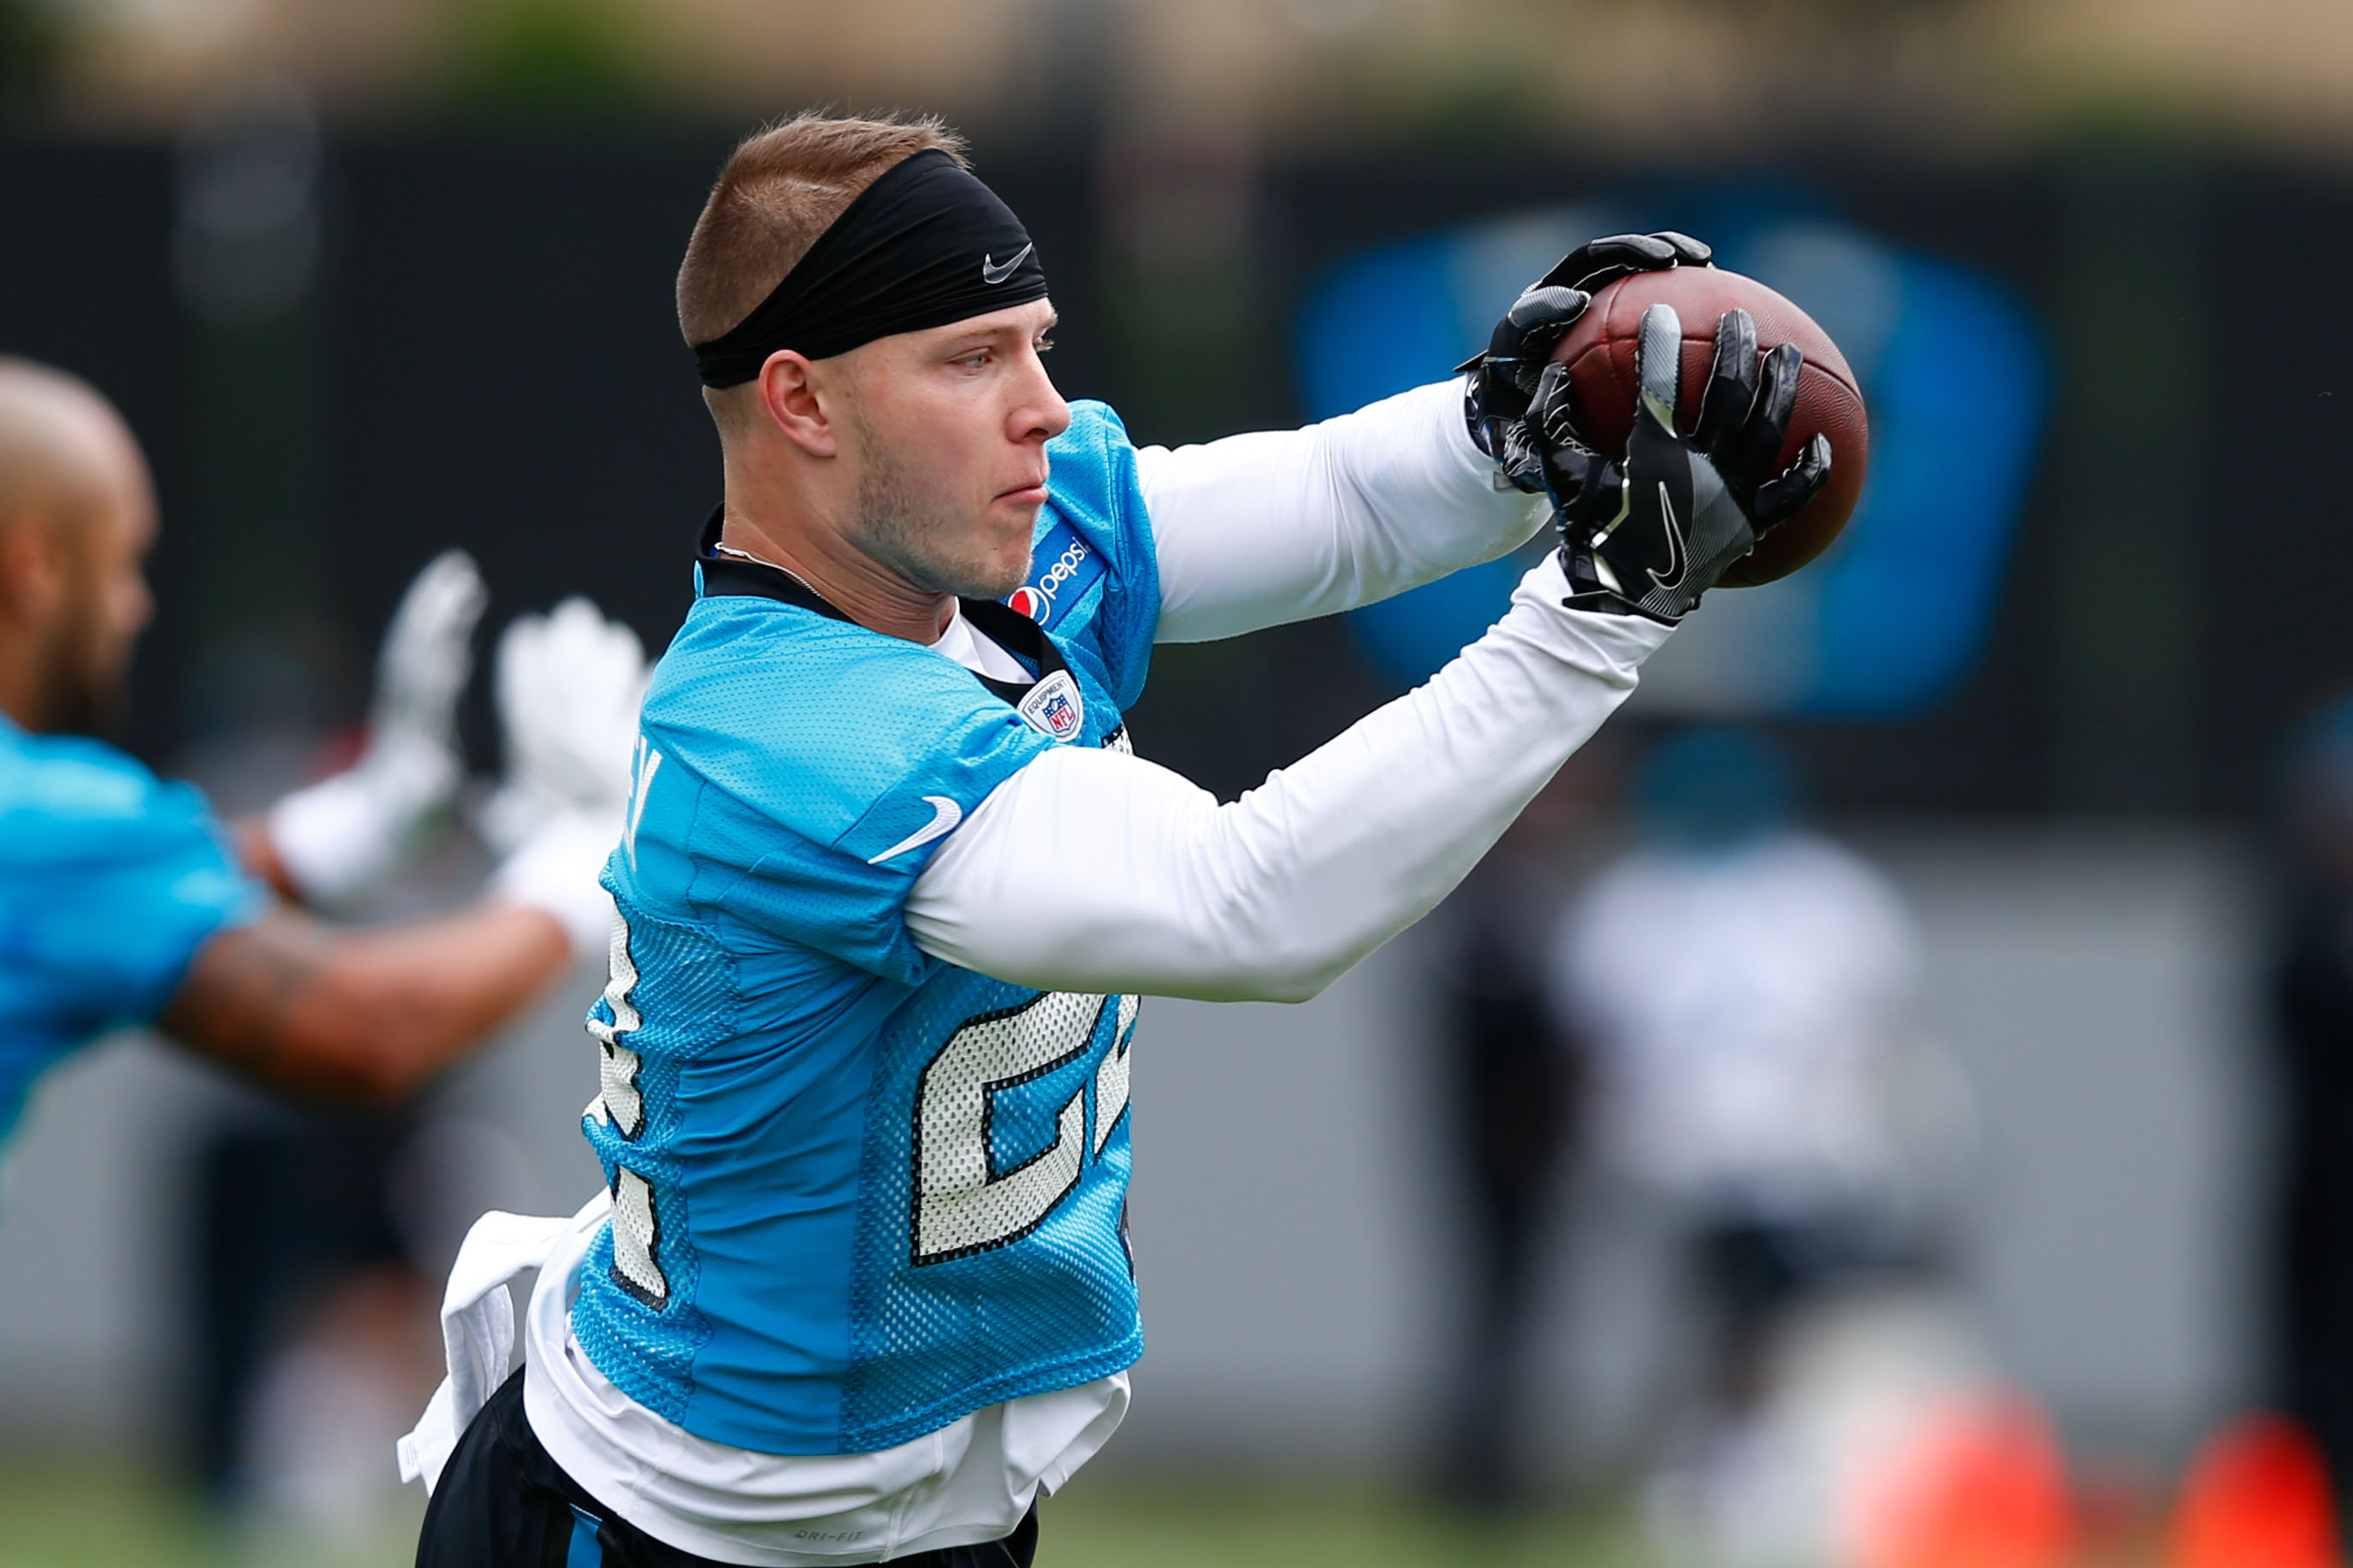 Three Top Panthers Stories for June 6, including why ... Christian Mccaffrey